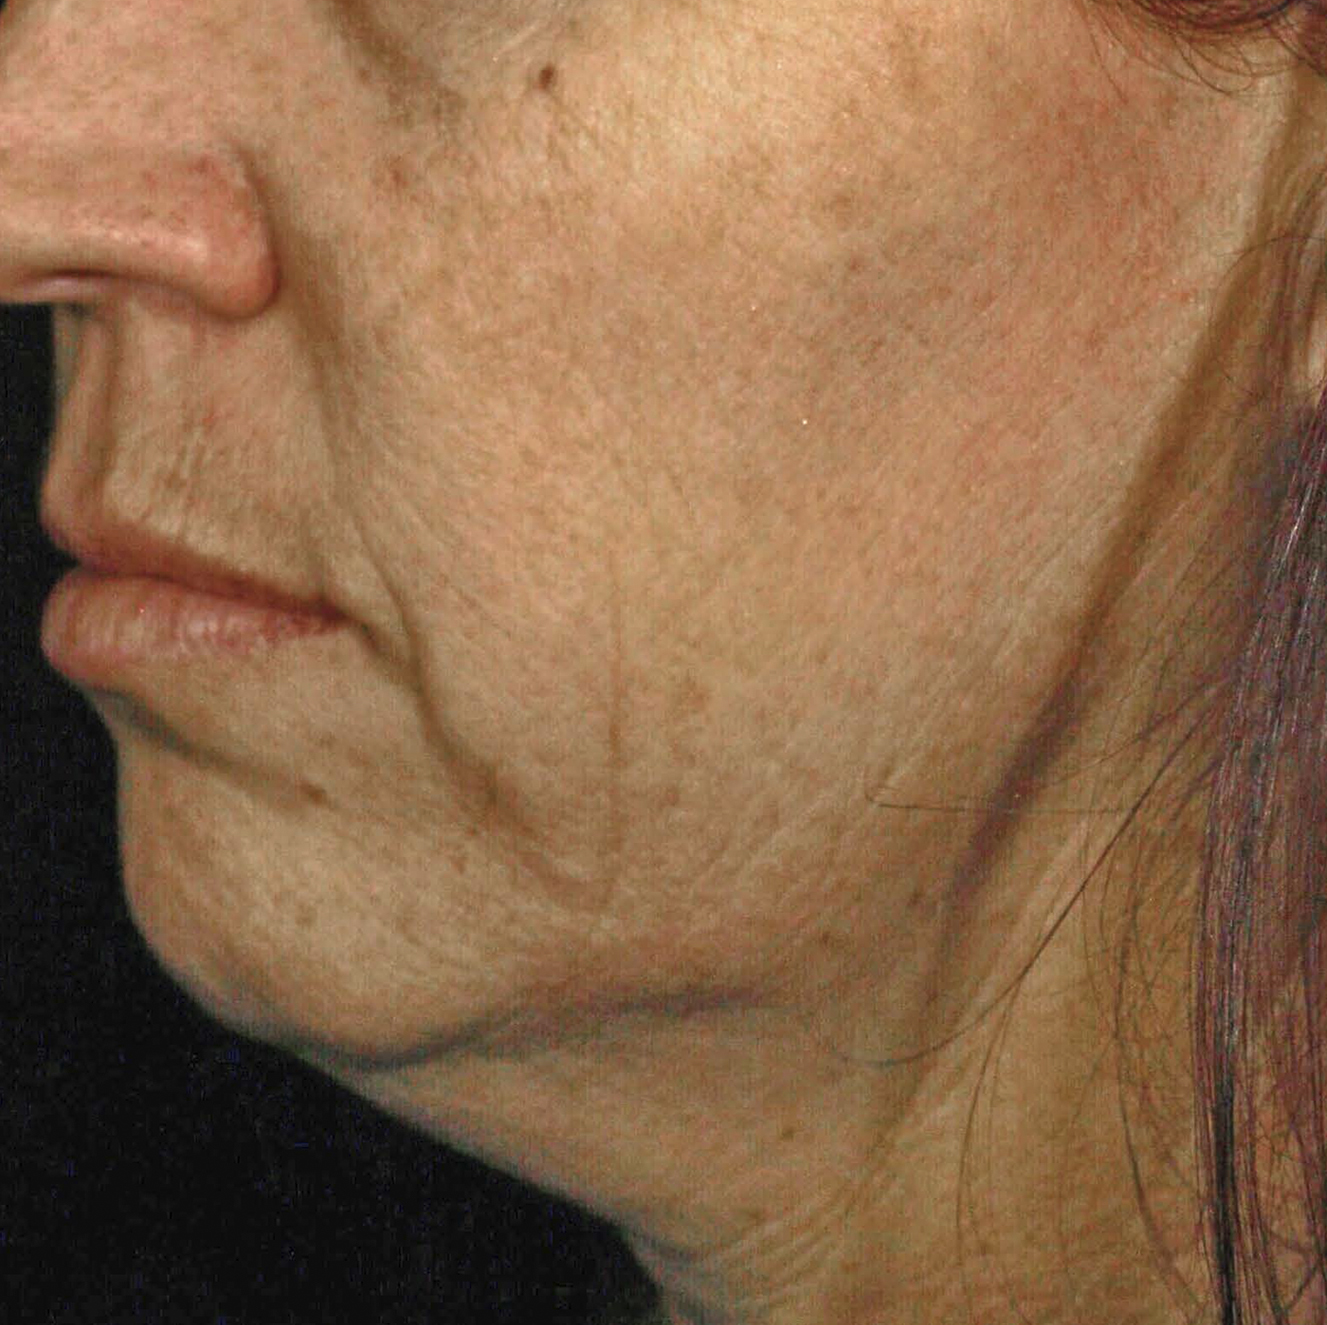 Skintyte Before Treatment Image